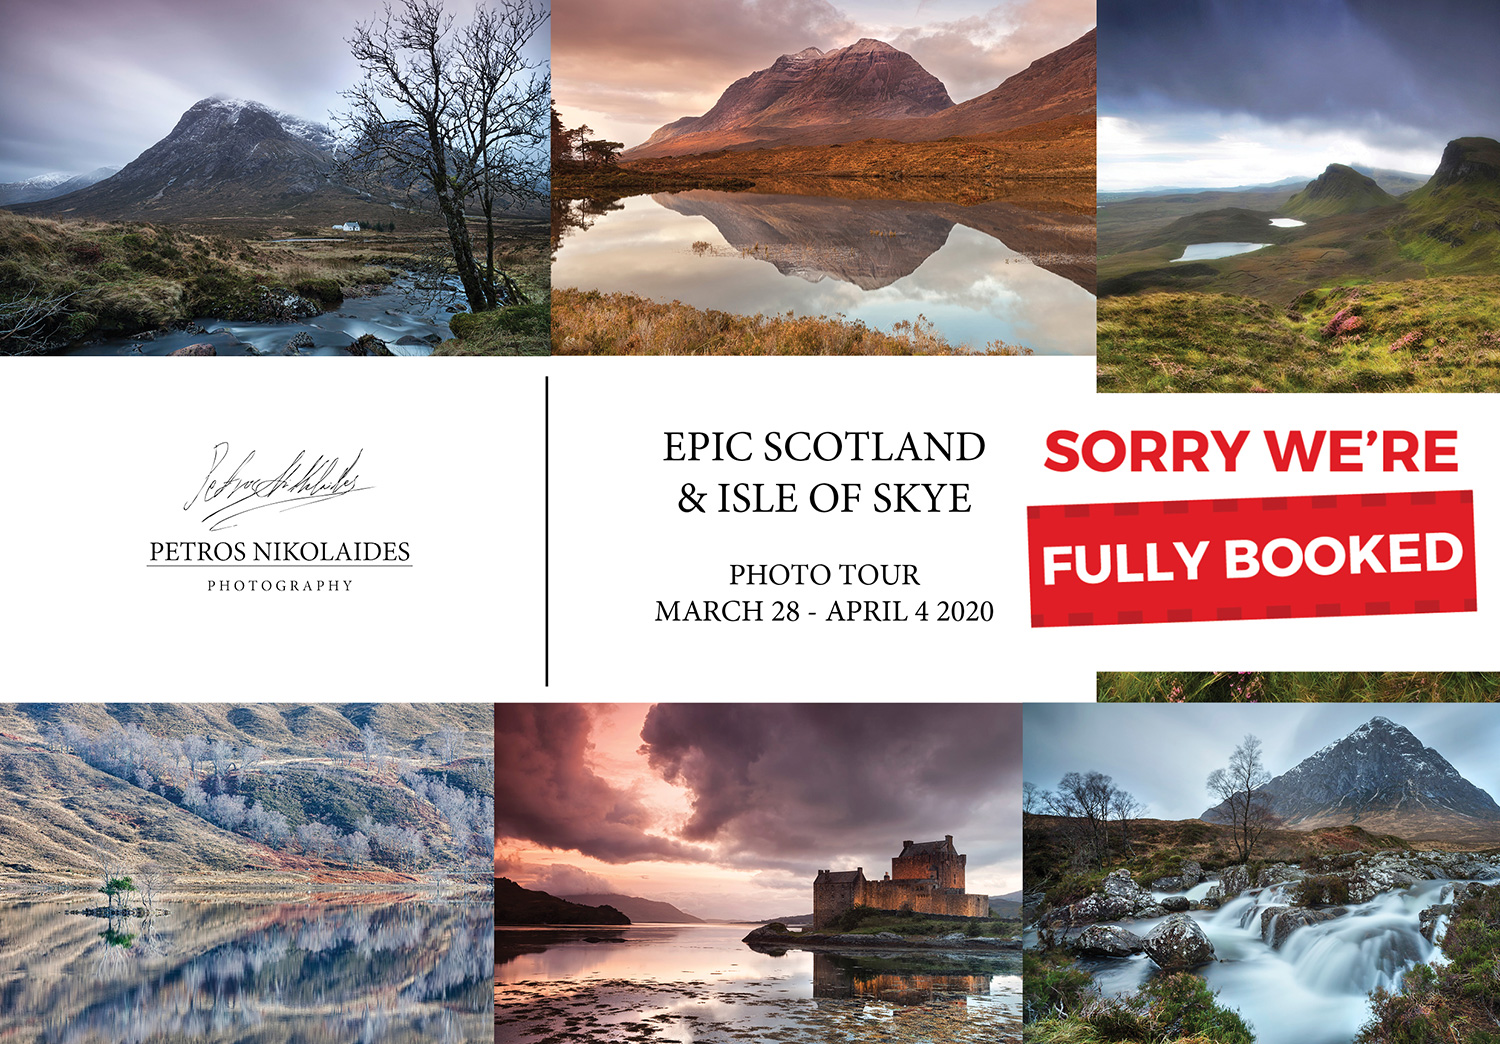 EPIC-SCOTLAND-&-ISLE-OF-SKYE-PHOTO-TOUR-FULLY-BOOKED